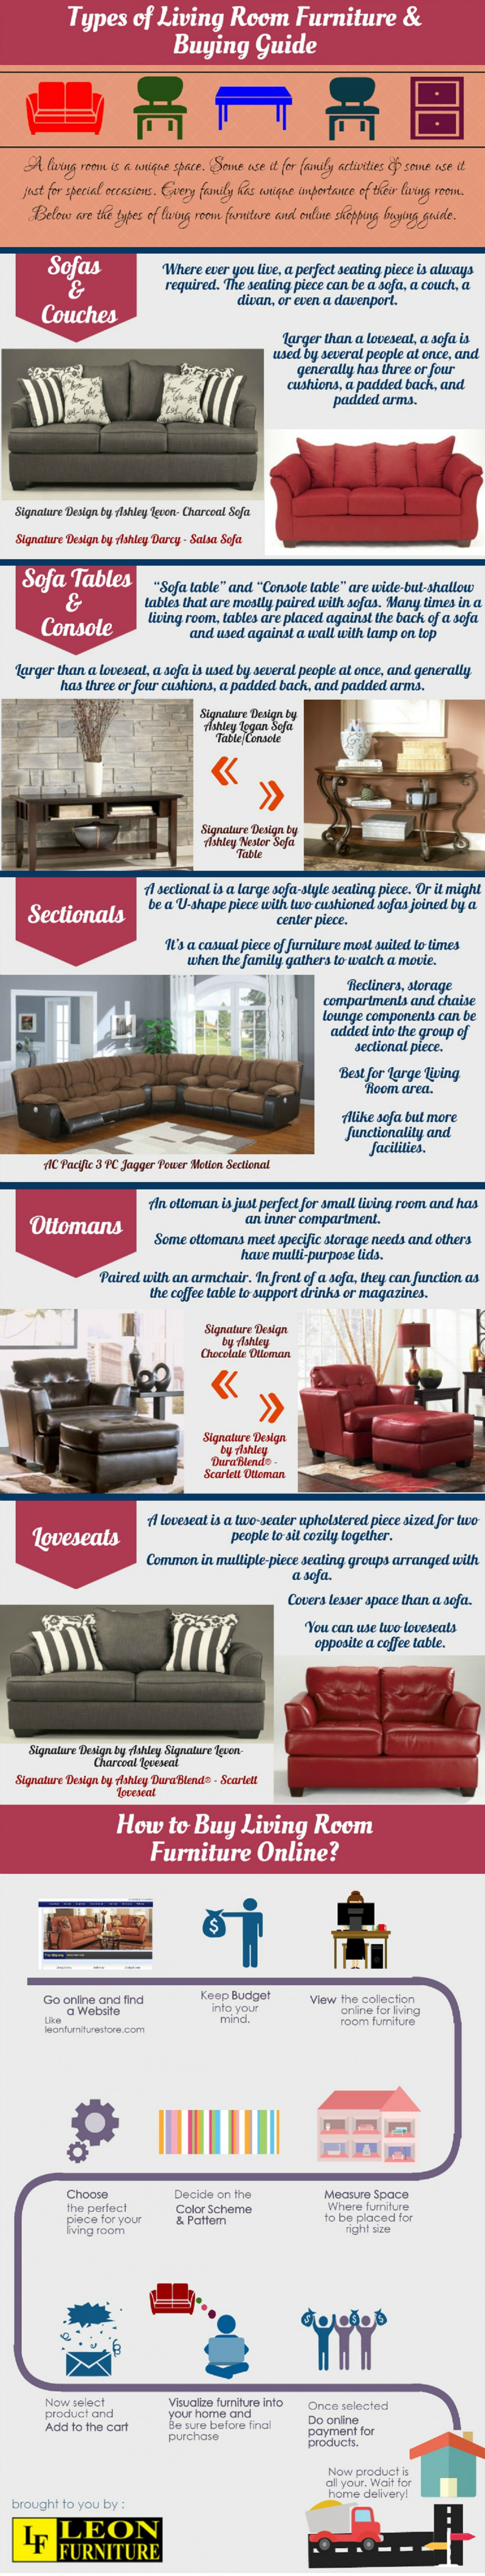 Types of living room furniture buying guide for Types of living room furniture